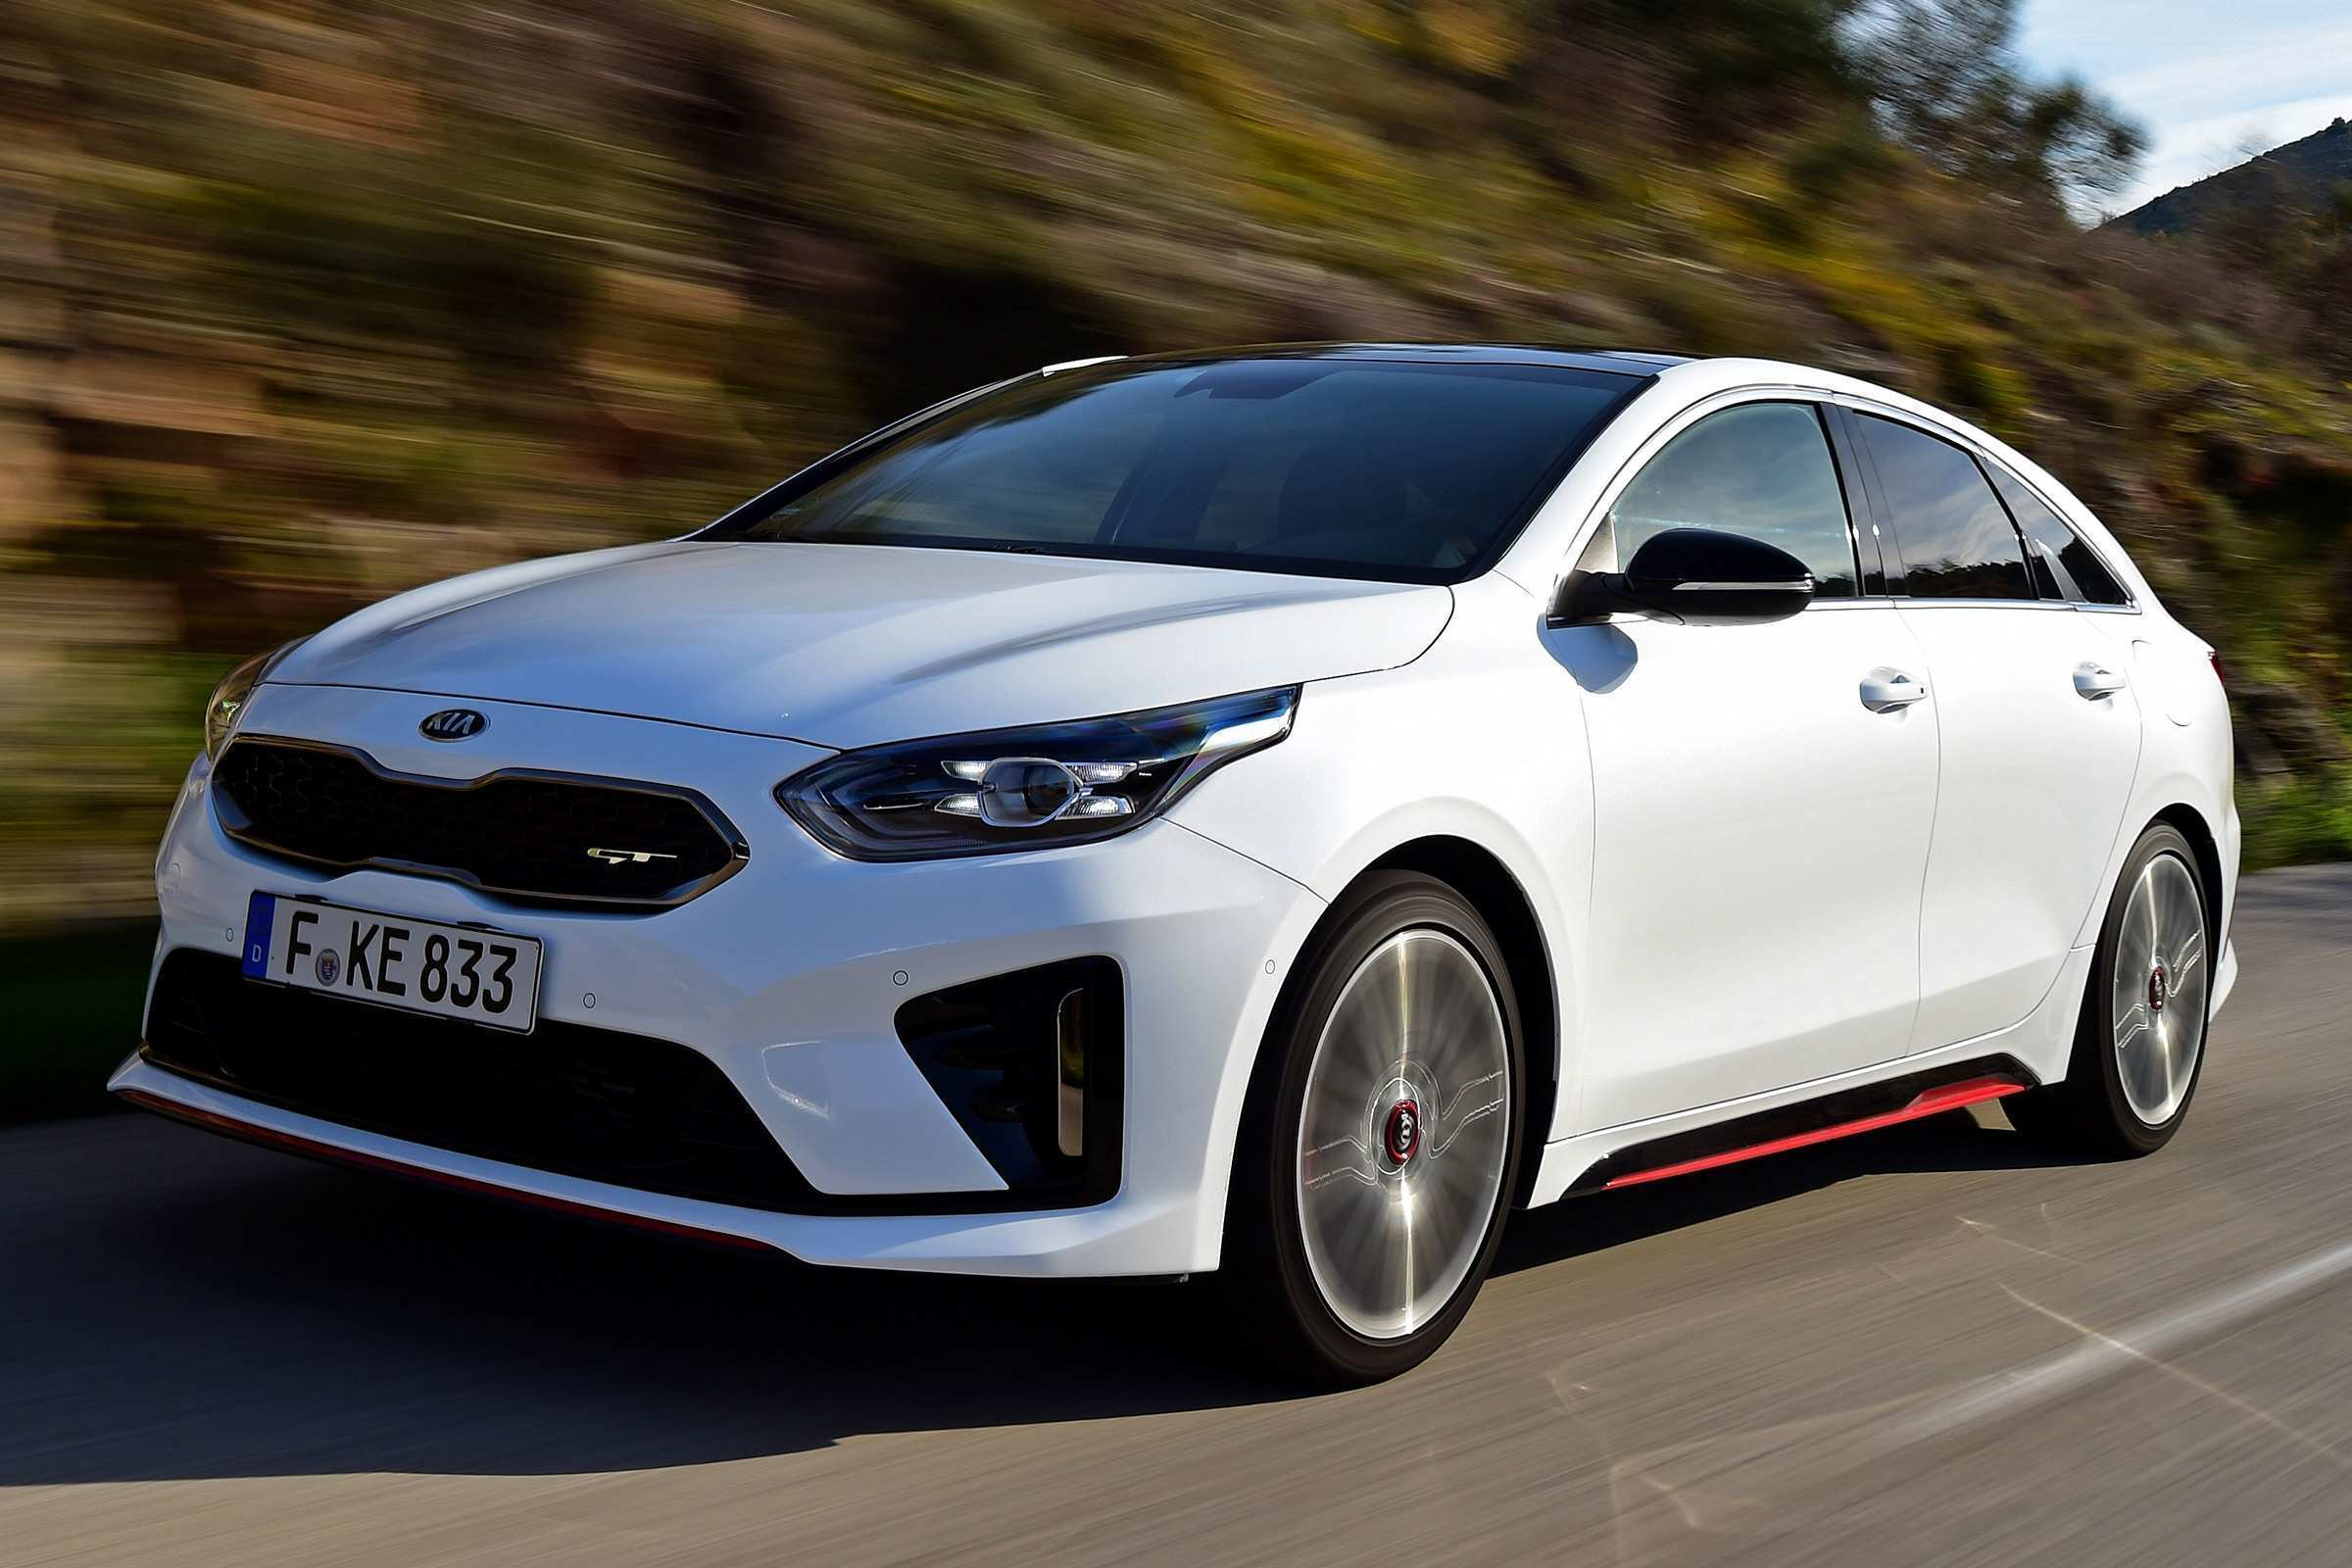 40 All New Kia Pro Ceed Gt 2019 Pricing